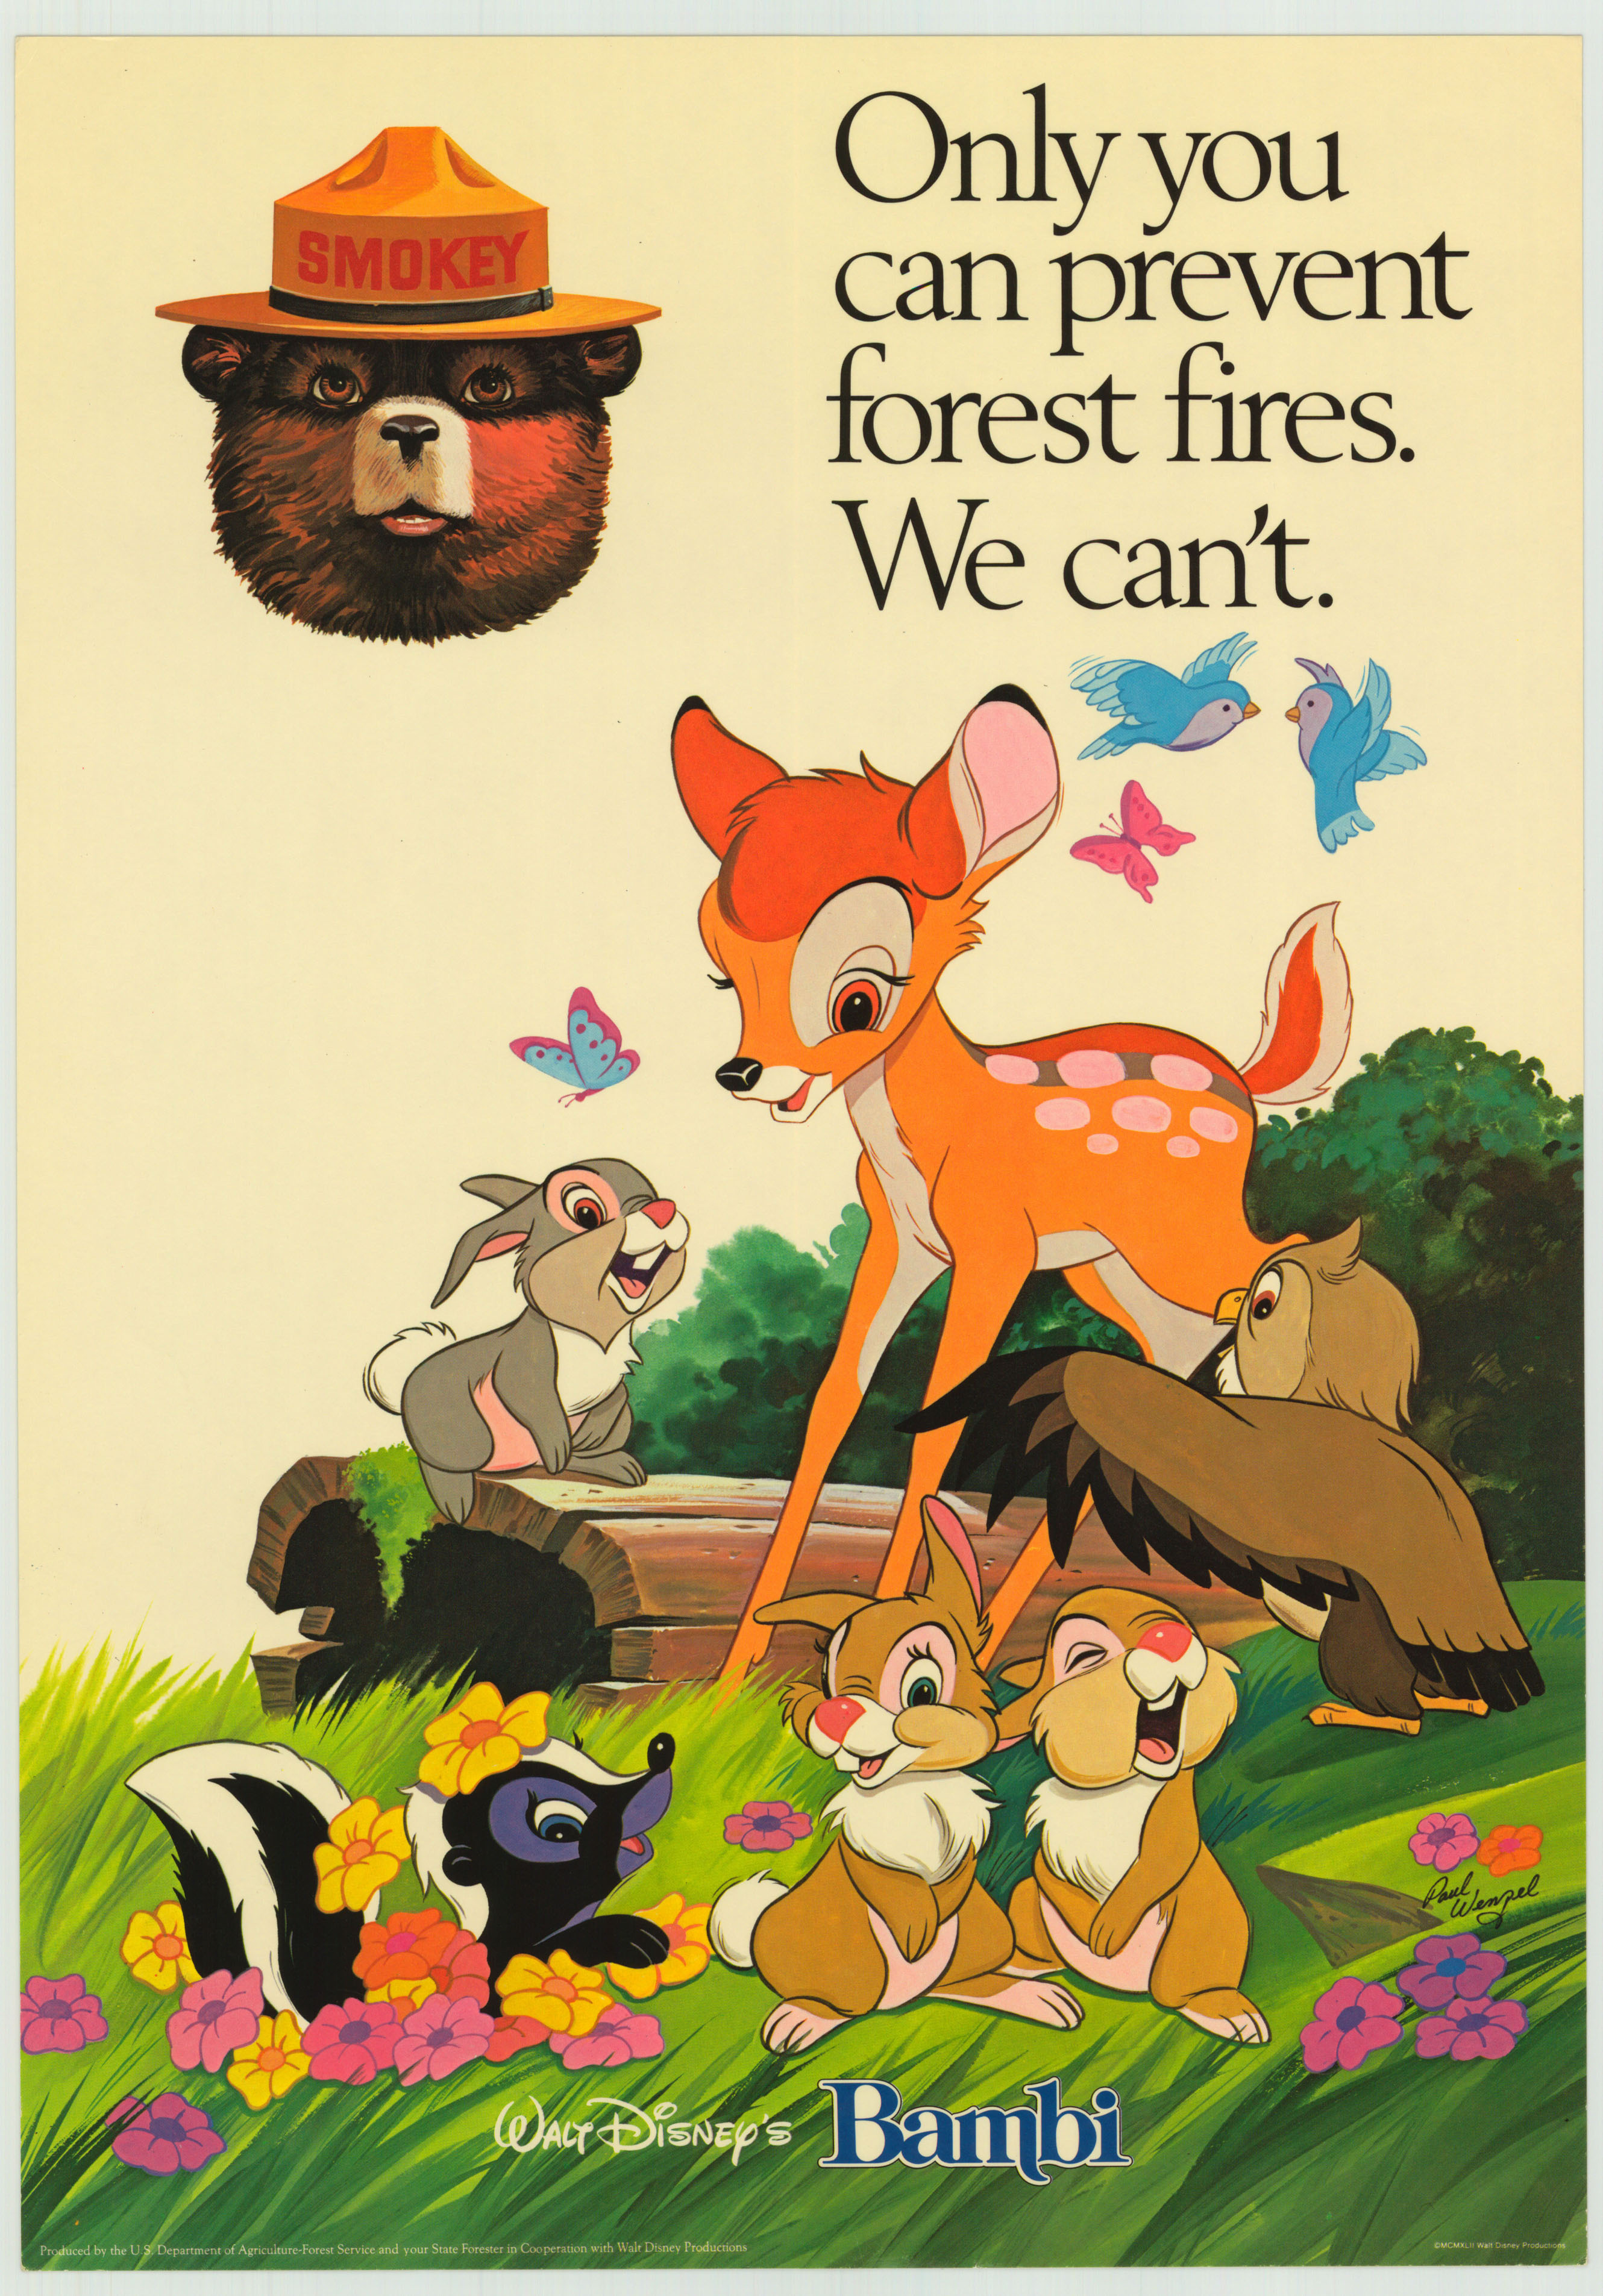 Walt Disney S Bambi Only You Can Prevent Forest Fires